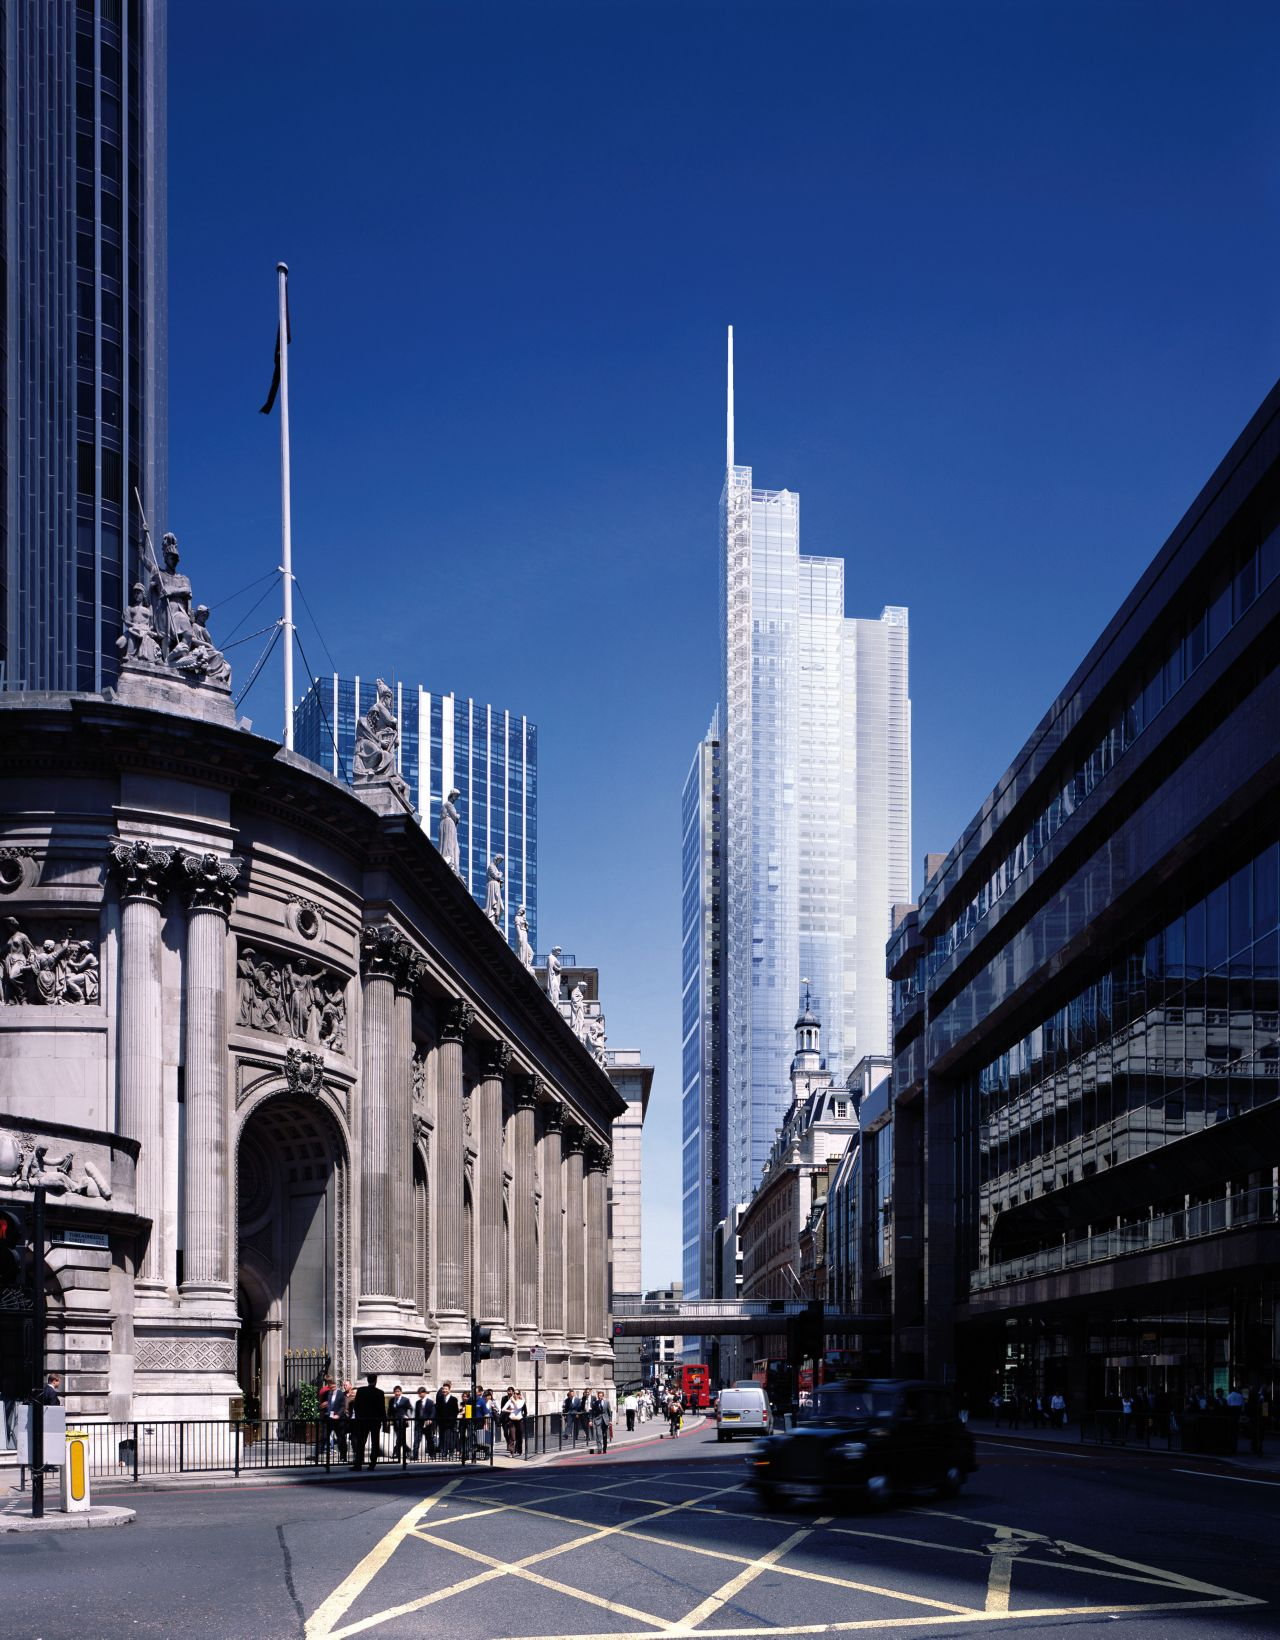 Combination of old buildings and modern high-rise building